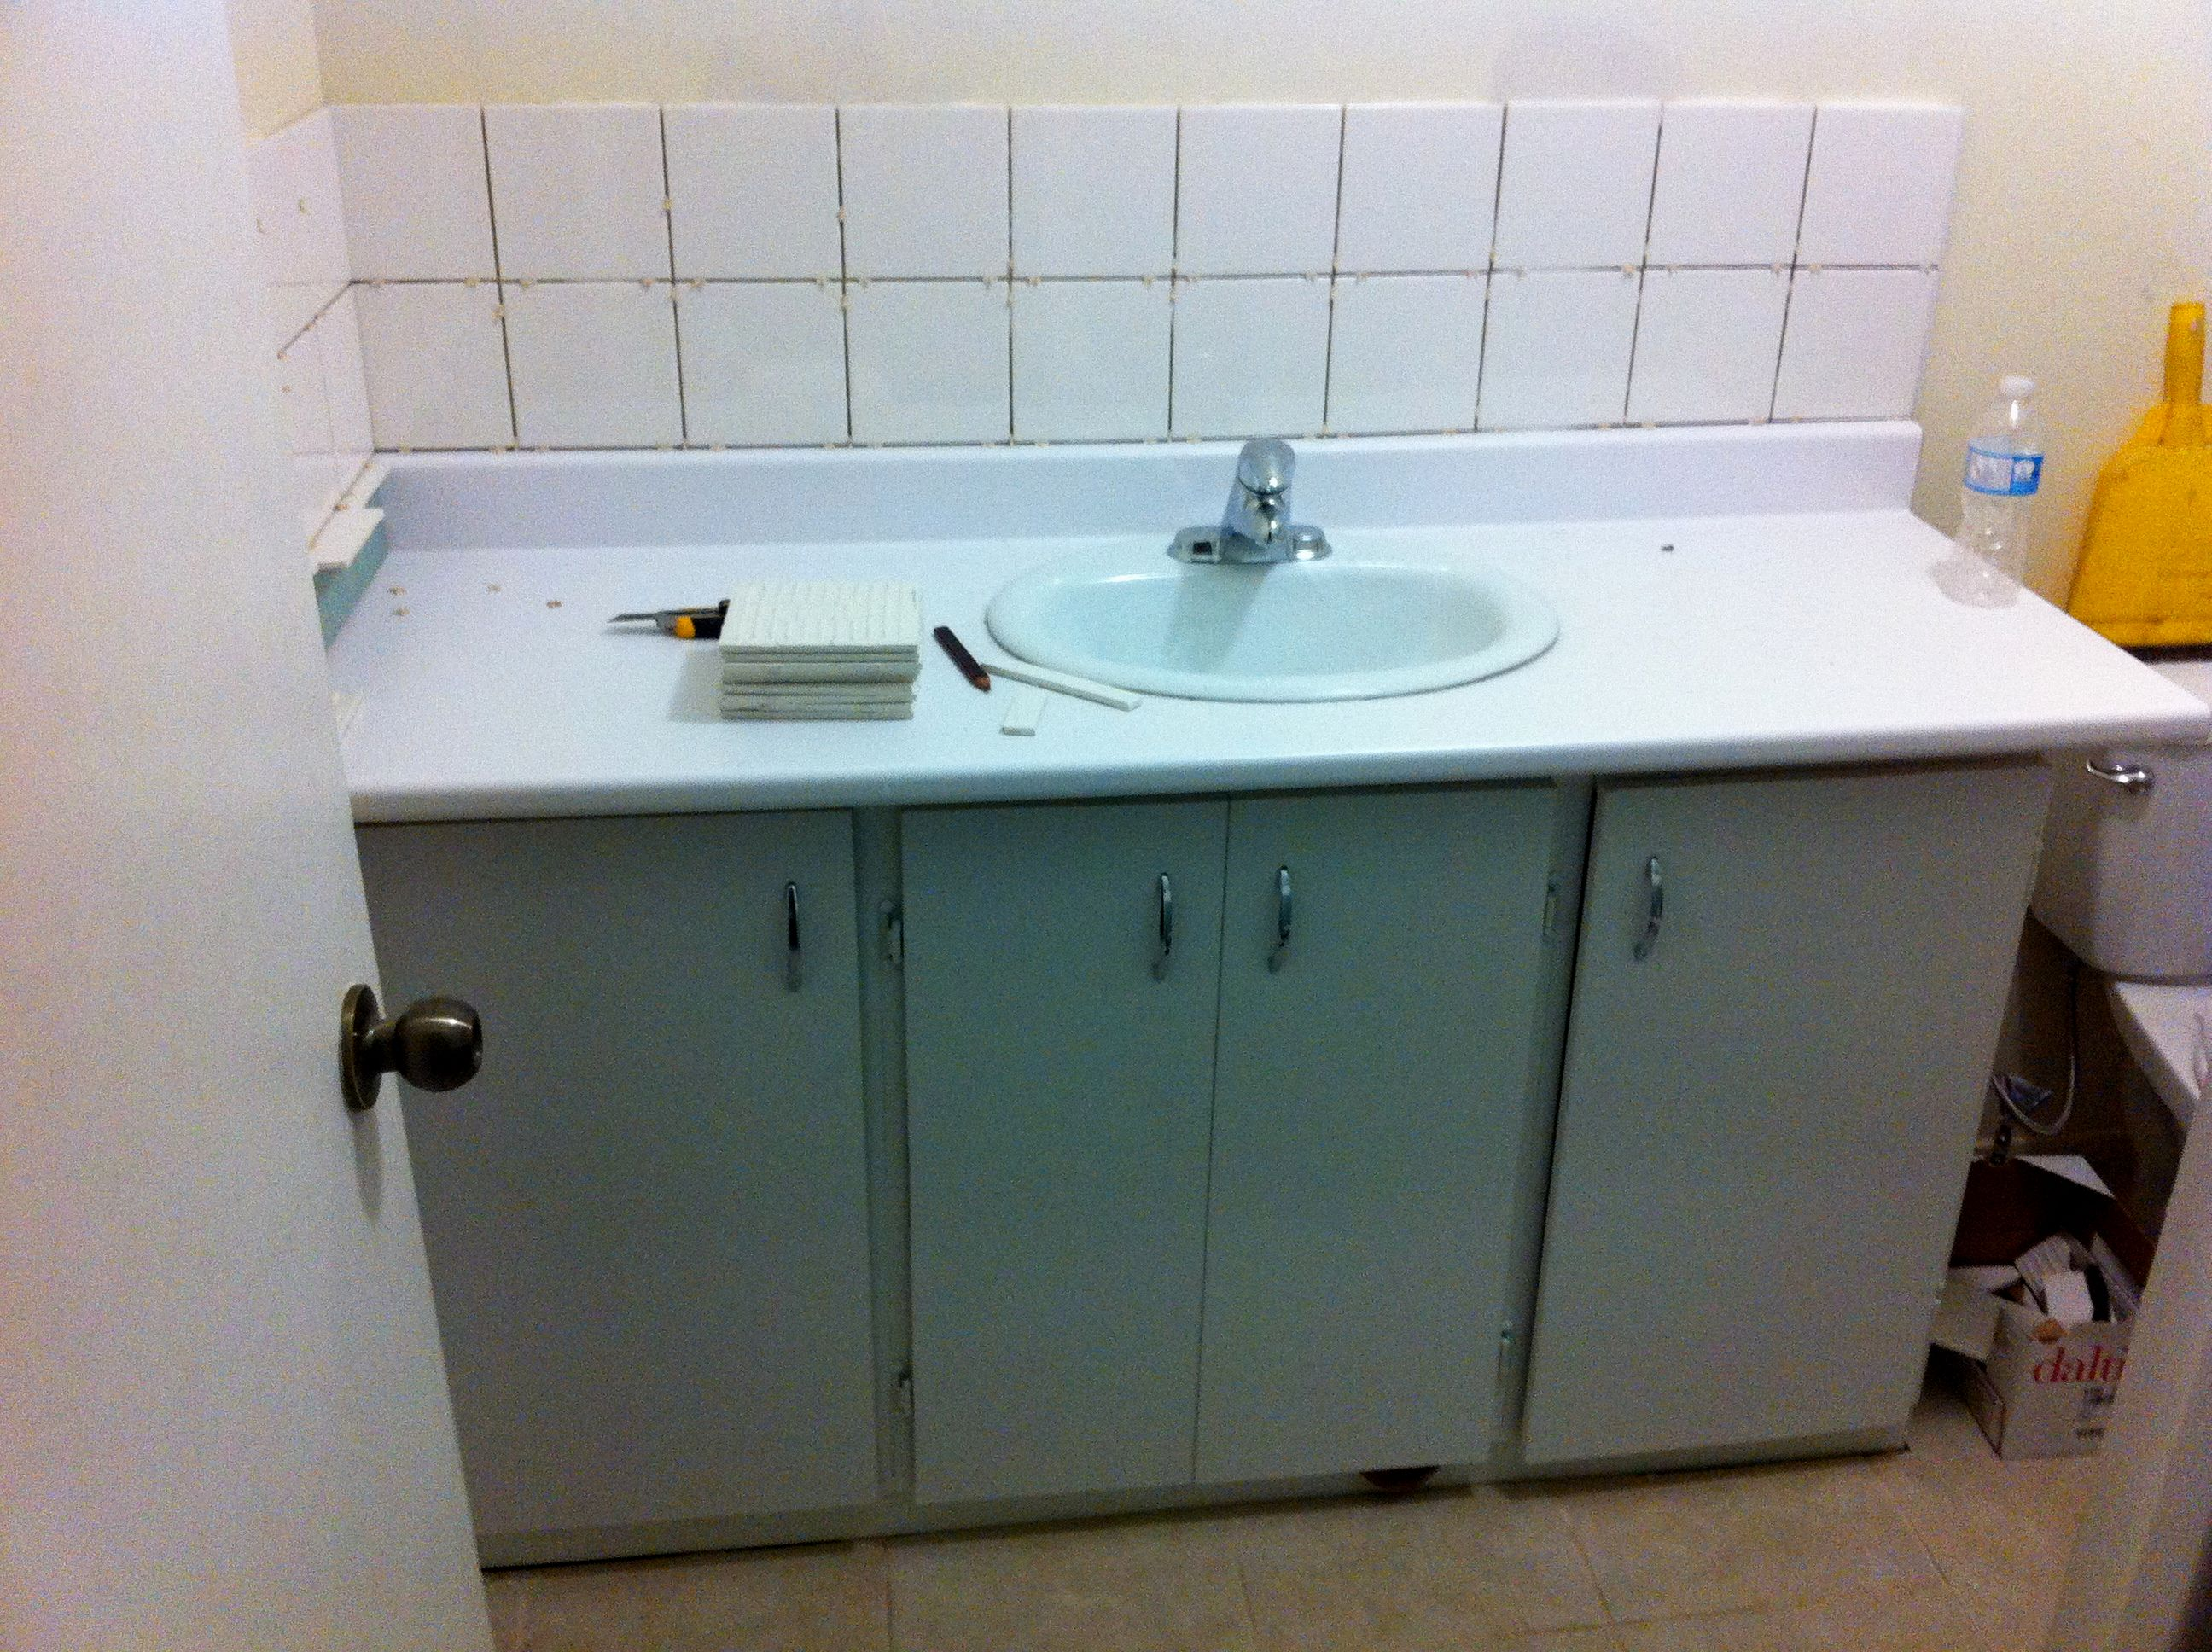 sensational undermount bathroom sinks online-New Undermount Bathroom Sinks Construction